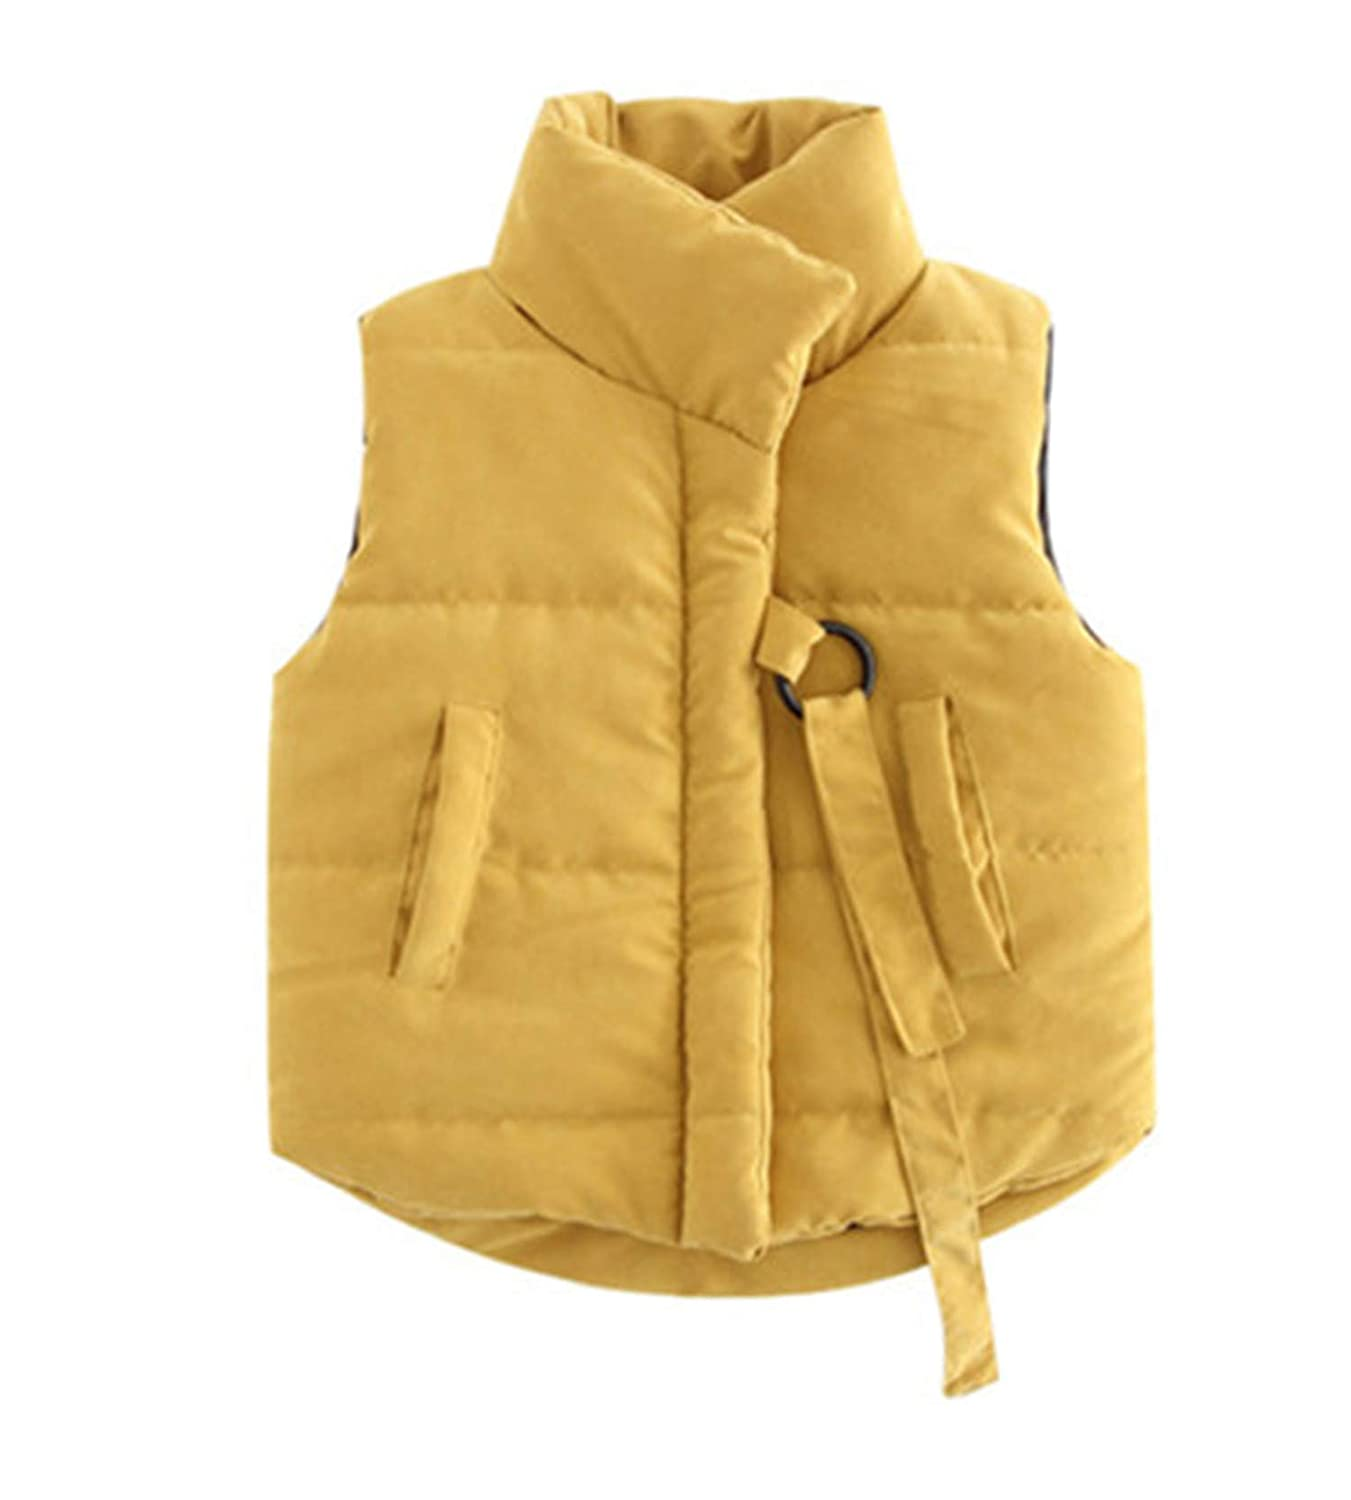 Baby Outerwear Vest Kids Clothes Sleeveless Solid Waistcoat for Girls Boy Jackets